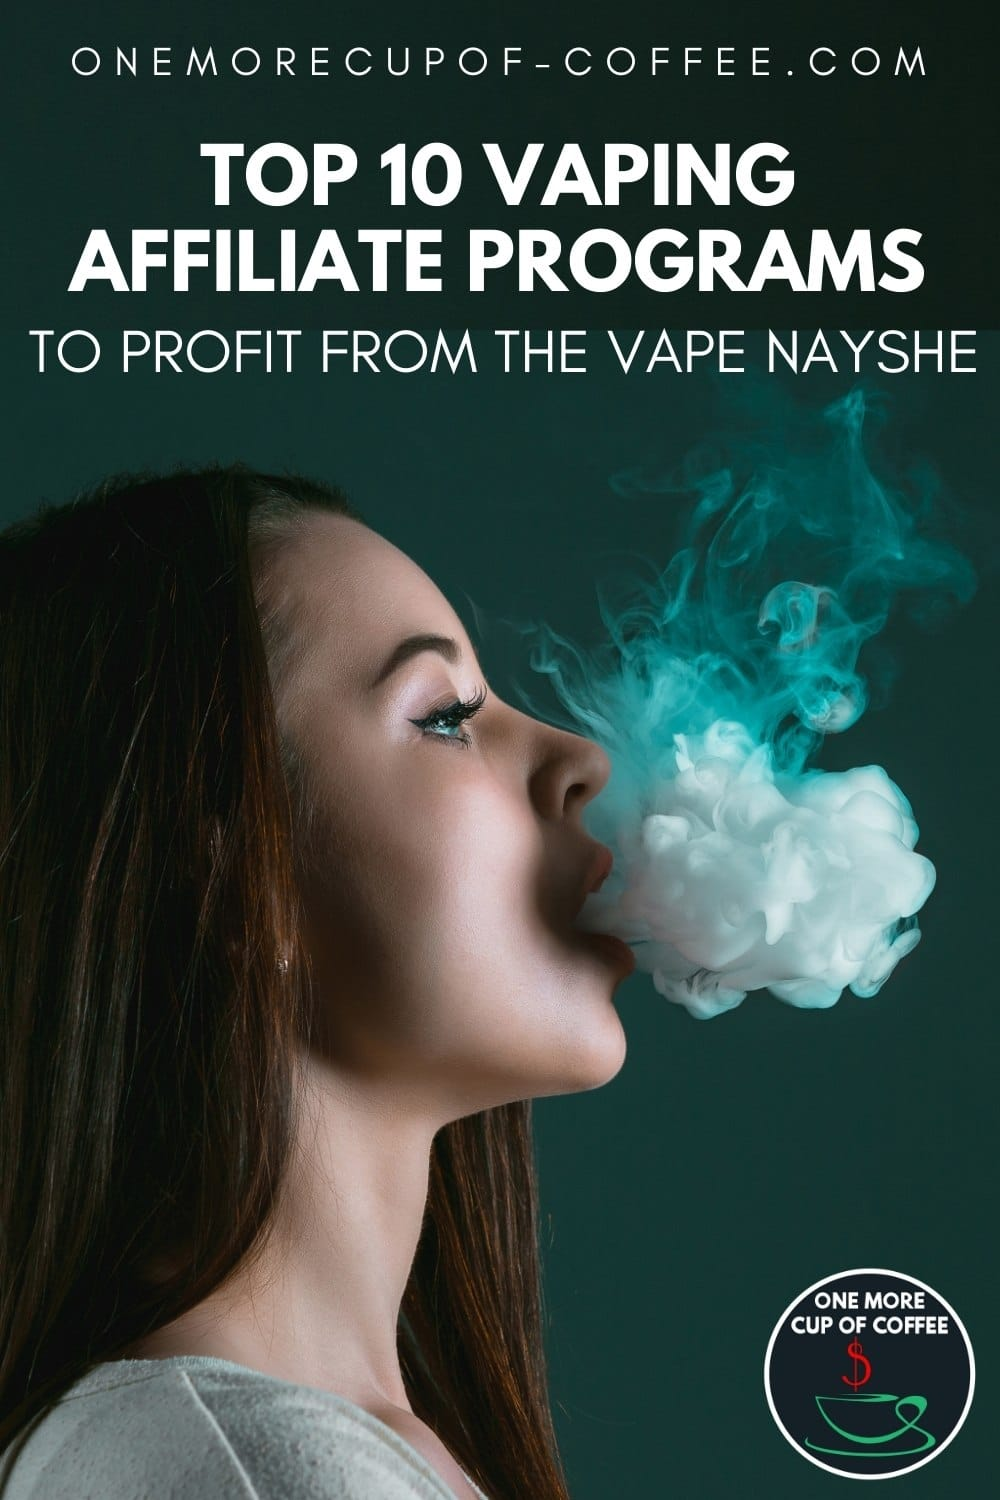 """side profile of a long-haired woman blowing a white smoke against a dark green background; with text at the top """"Top 10 Vaping Affiliate Programs To Profit From The Vape Nayshe"""""""